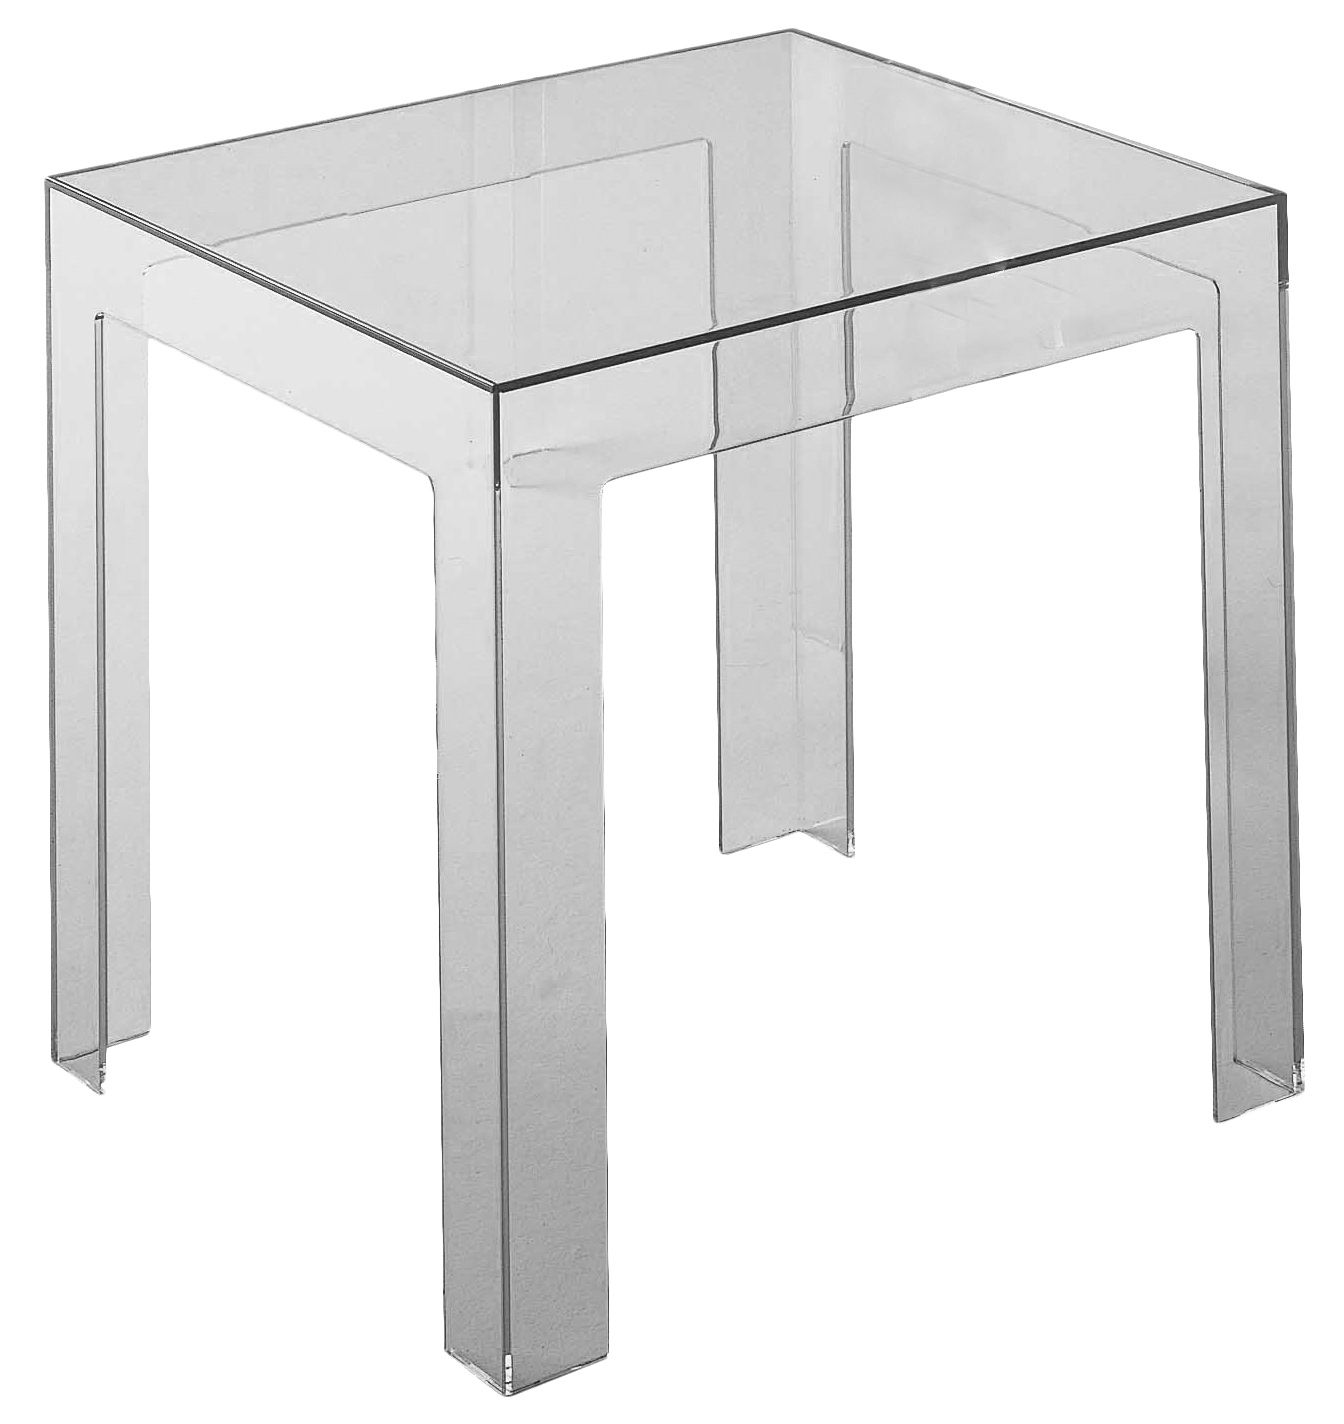 Kartell Table D'appoint Table D'appoint Kartell Jolly Table Table Jolly Kartell Jolly D'appoint 6ymgb7vIYf